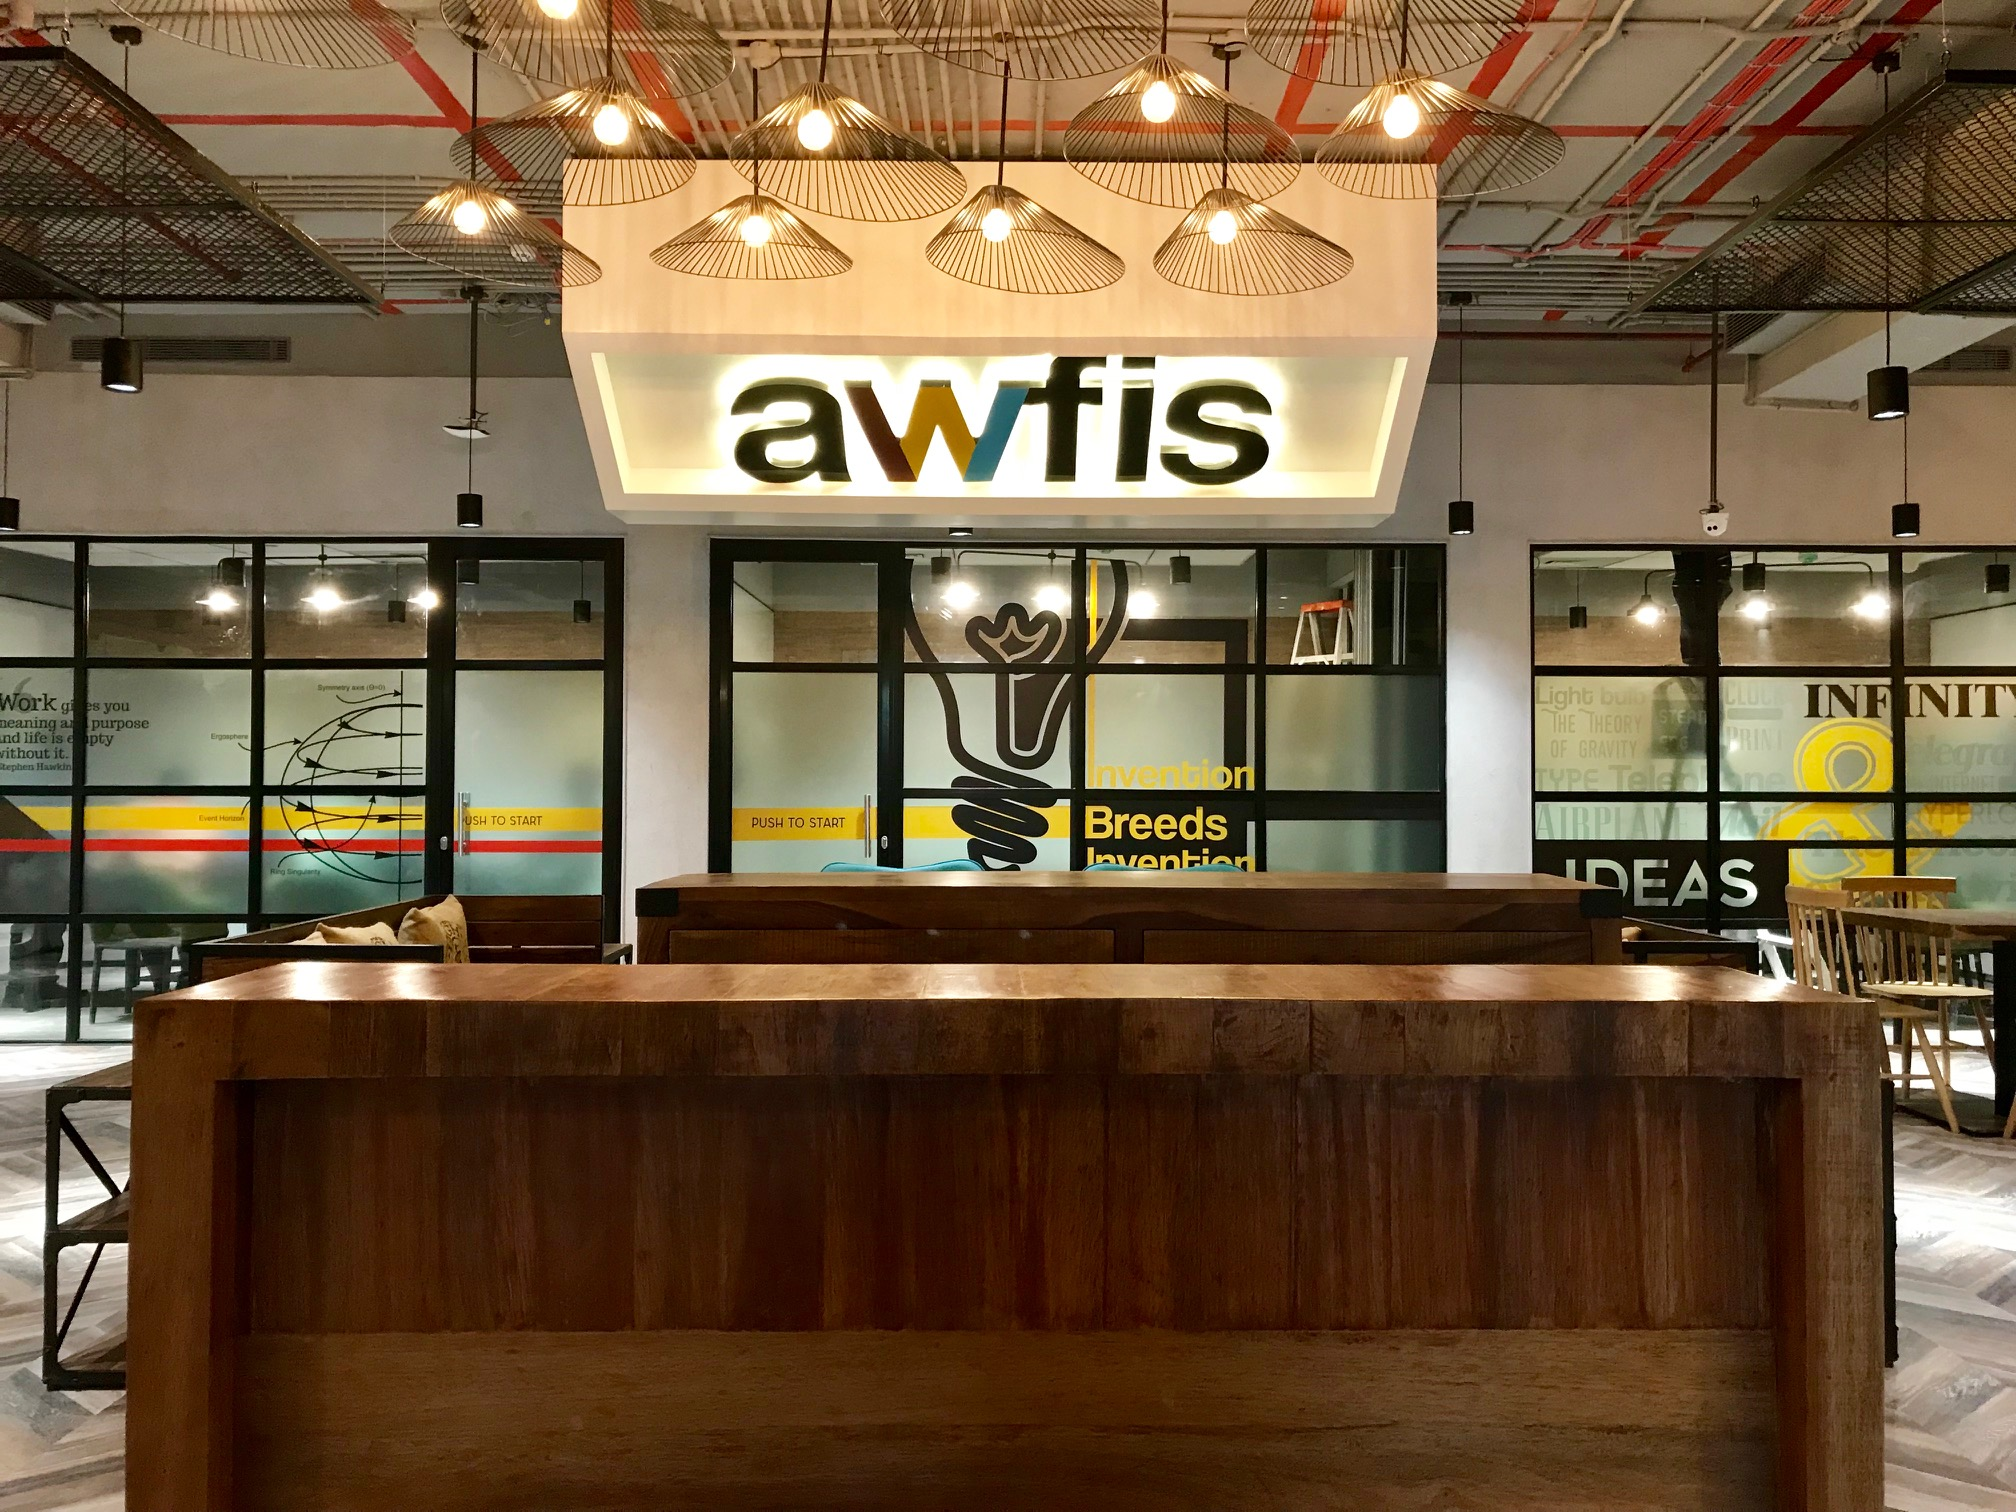 2018 will be consolidation year for co-working industry: Amit Ramani, Awfis